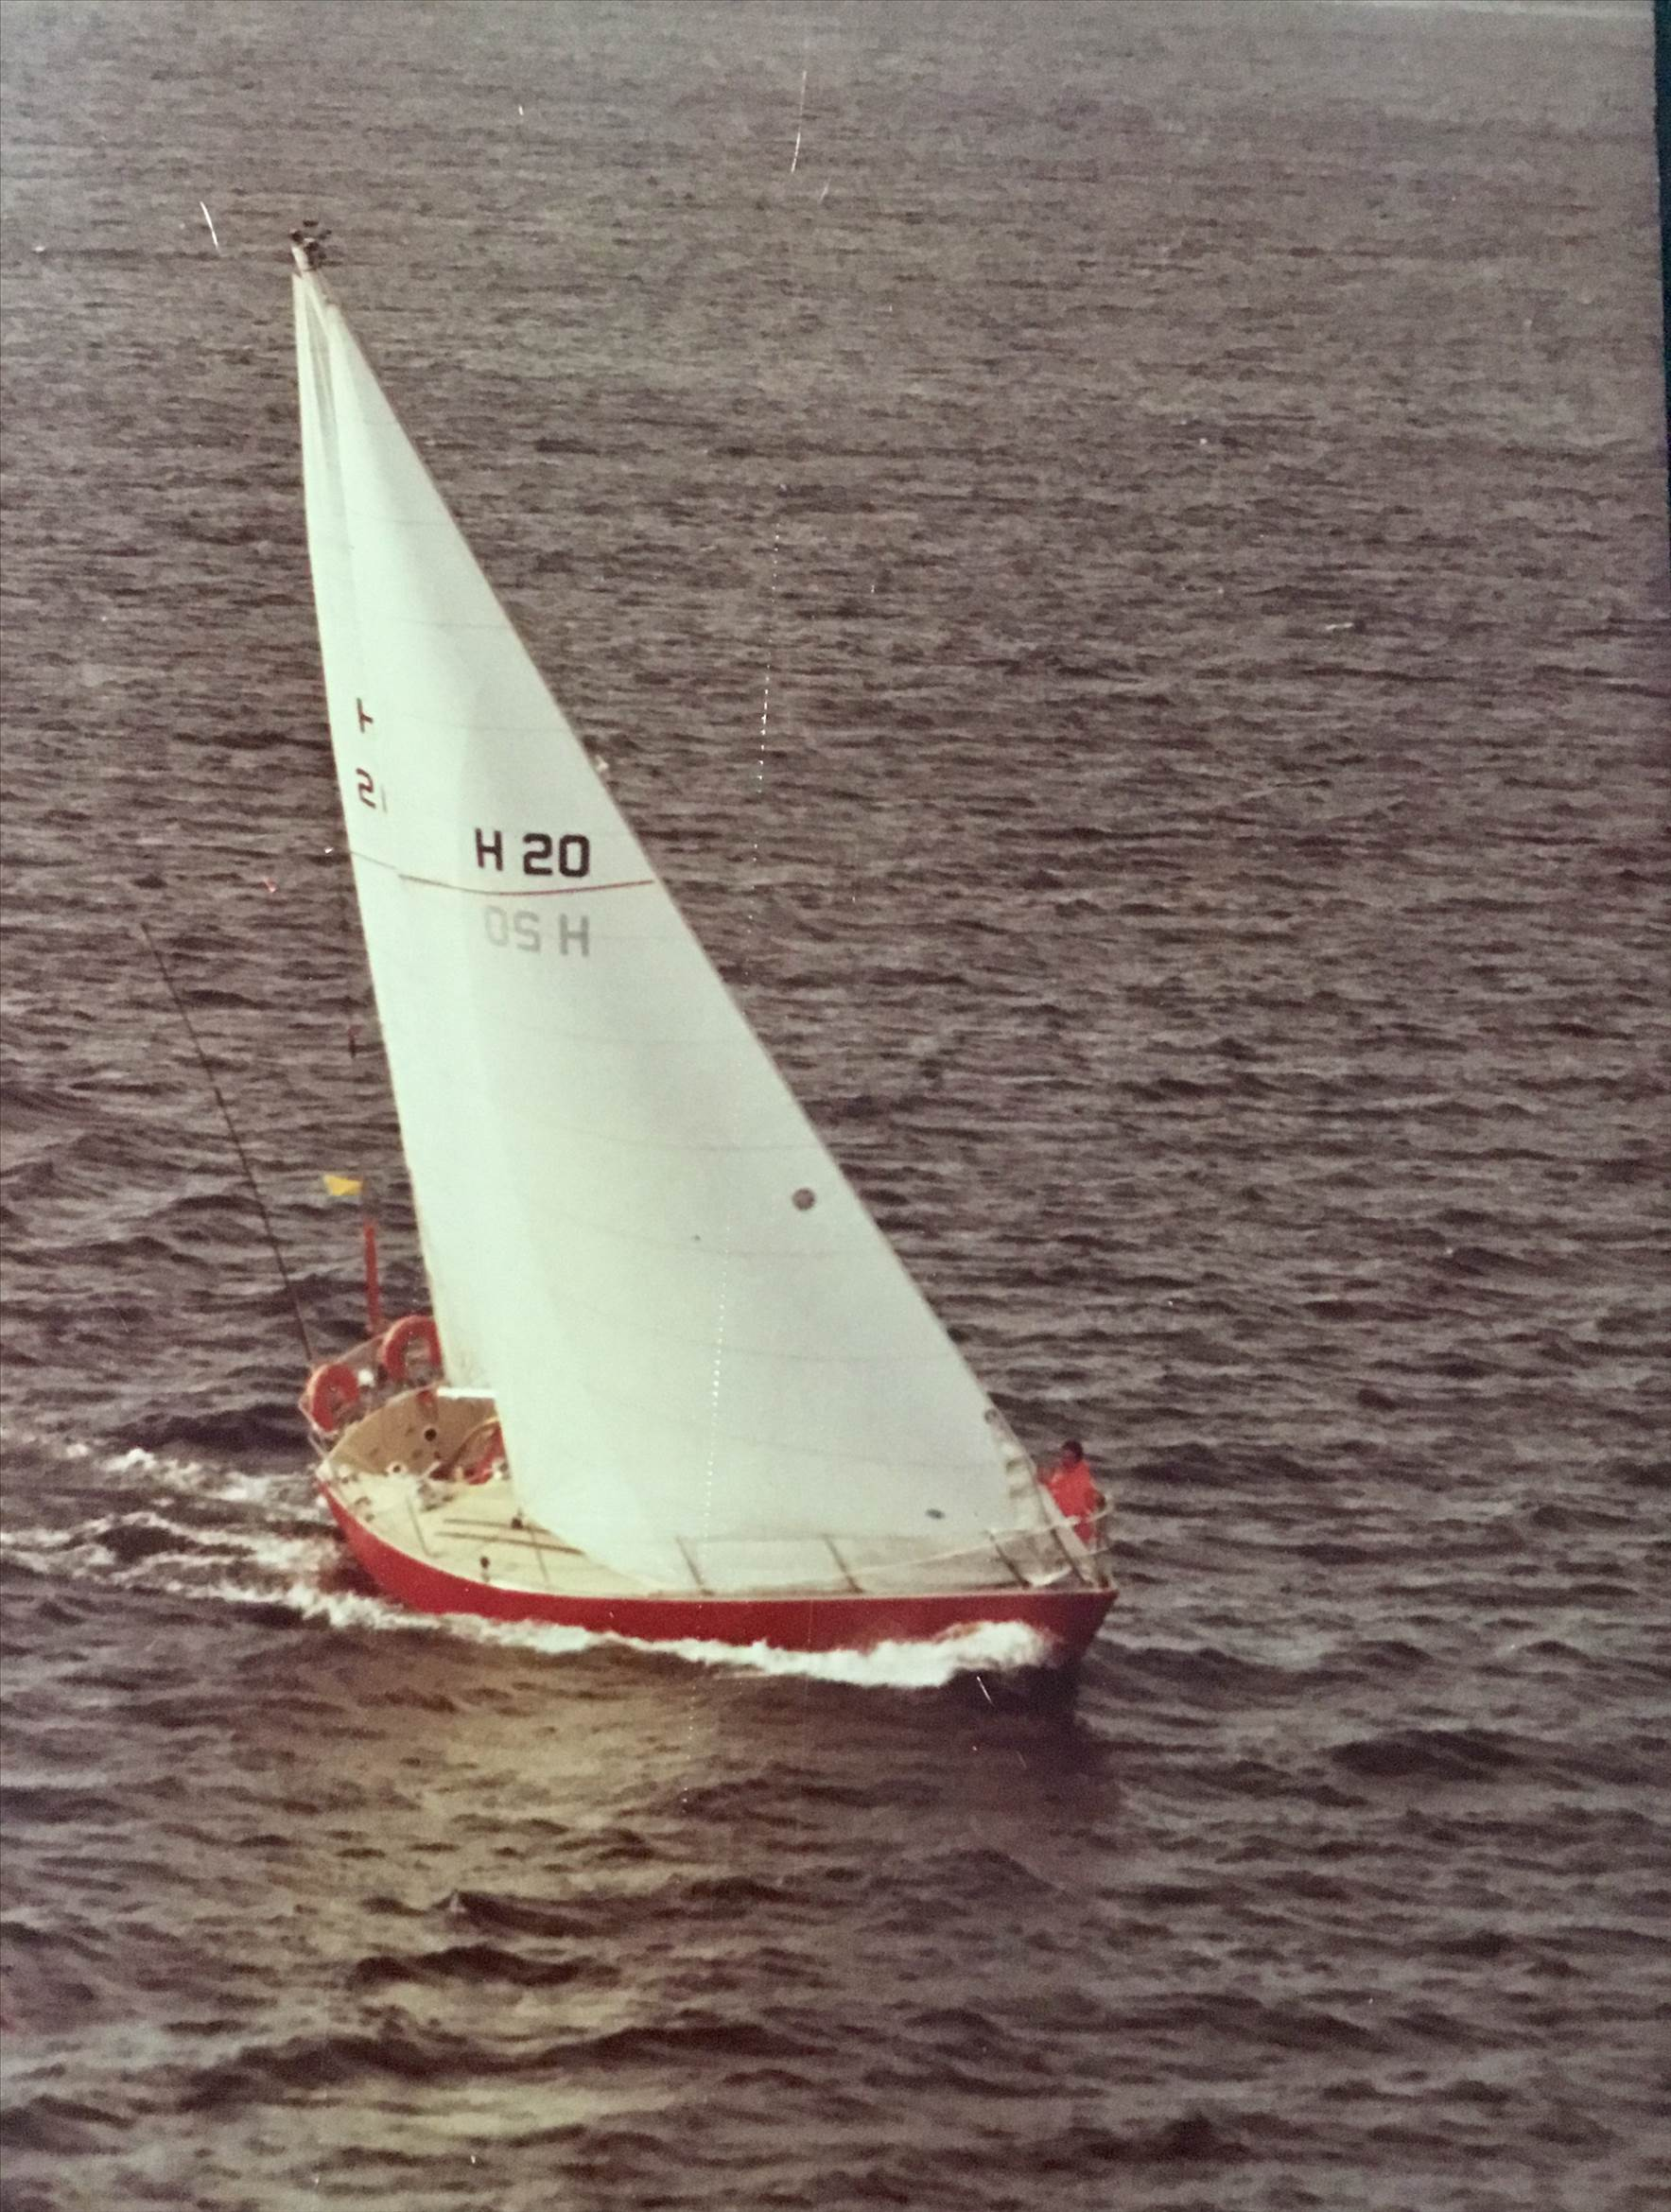 Racing with a extra large hanked headsail | Sailing Forums